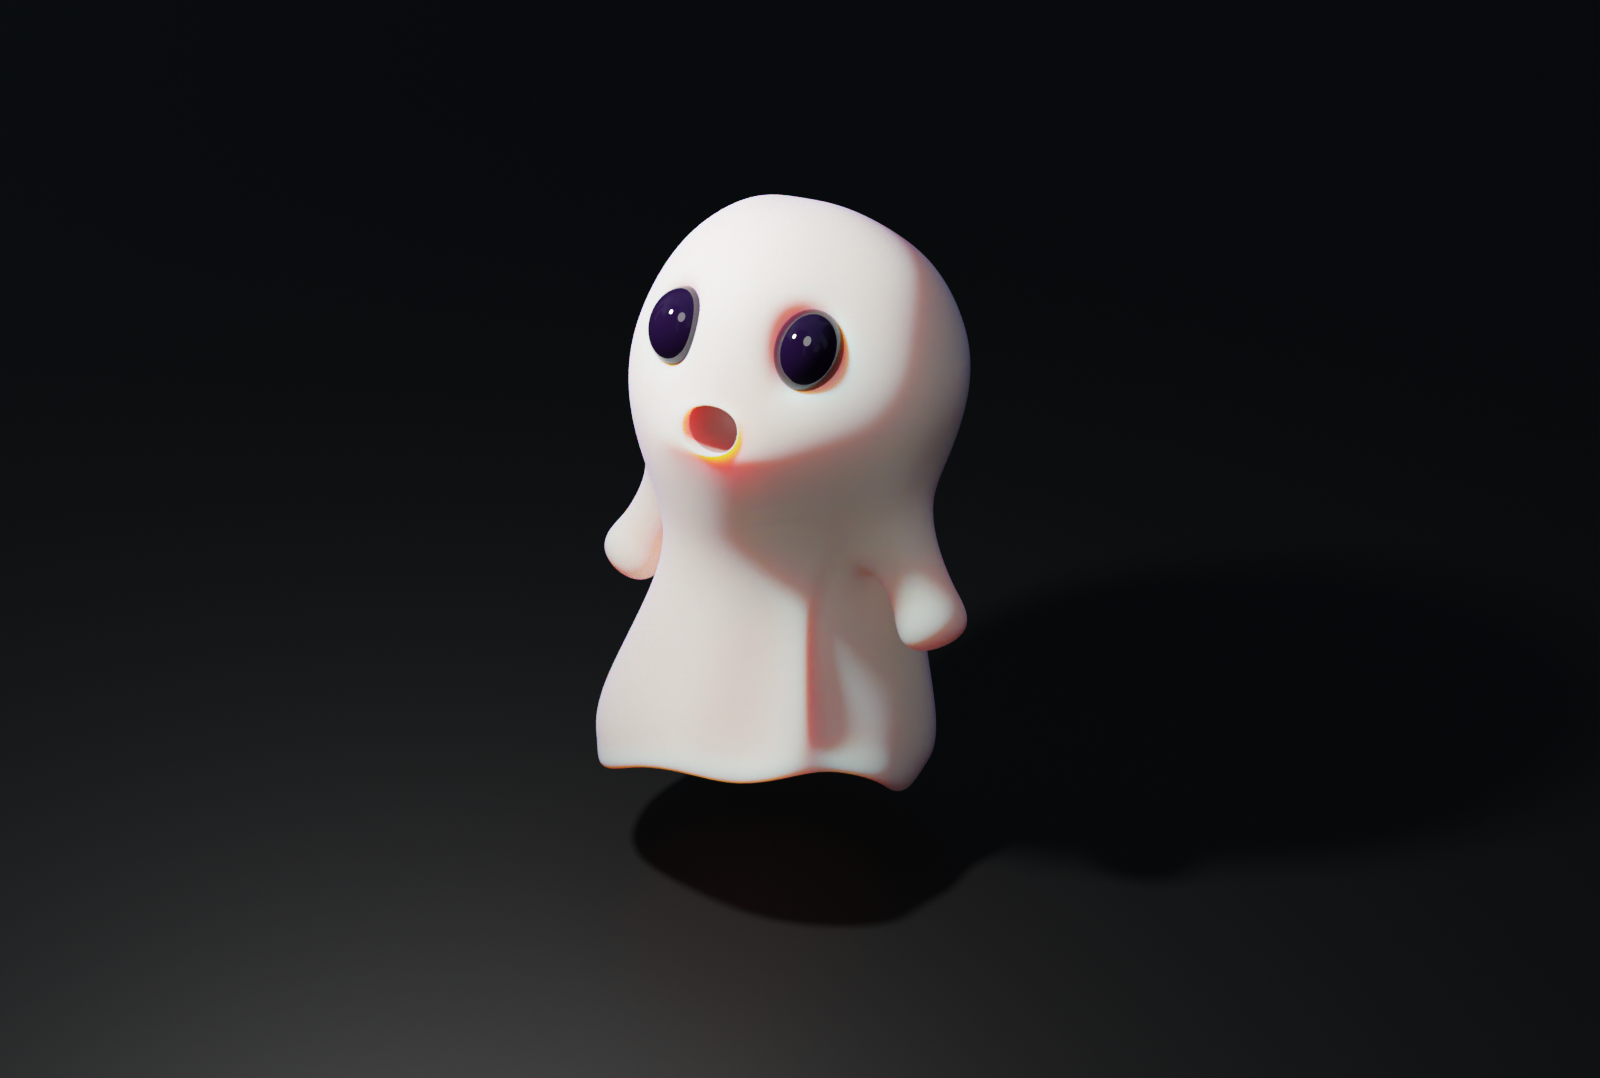 3D render of a scared-looking ghost